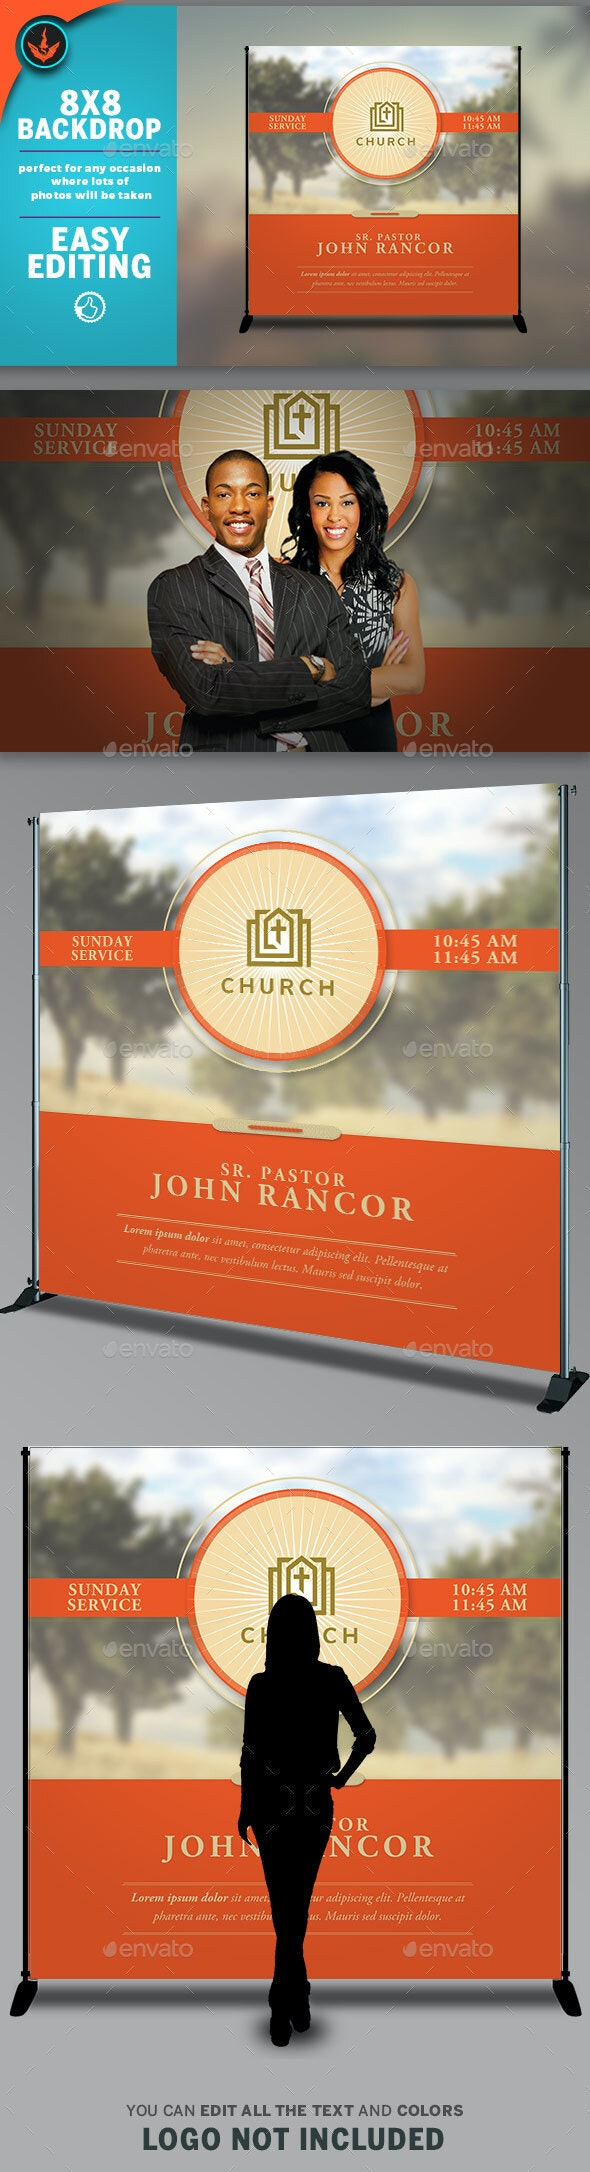 Church Backdrop Banner Template - Signage Print Templates